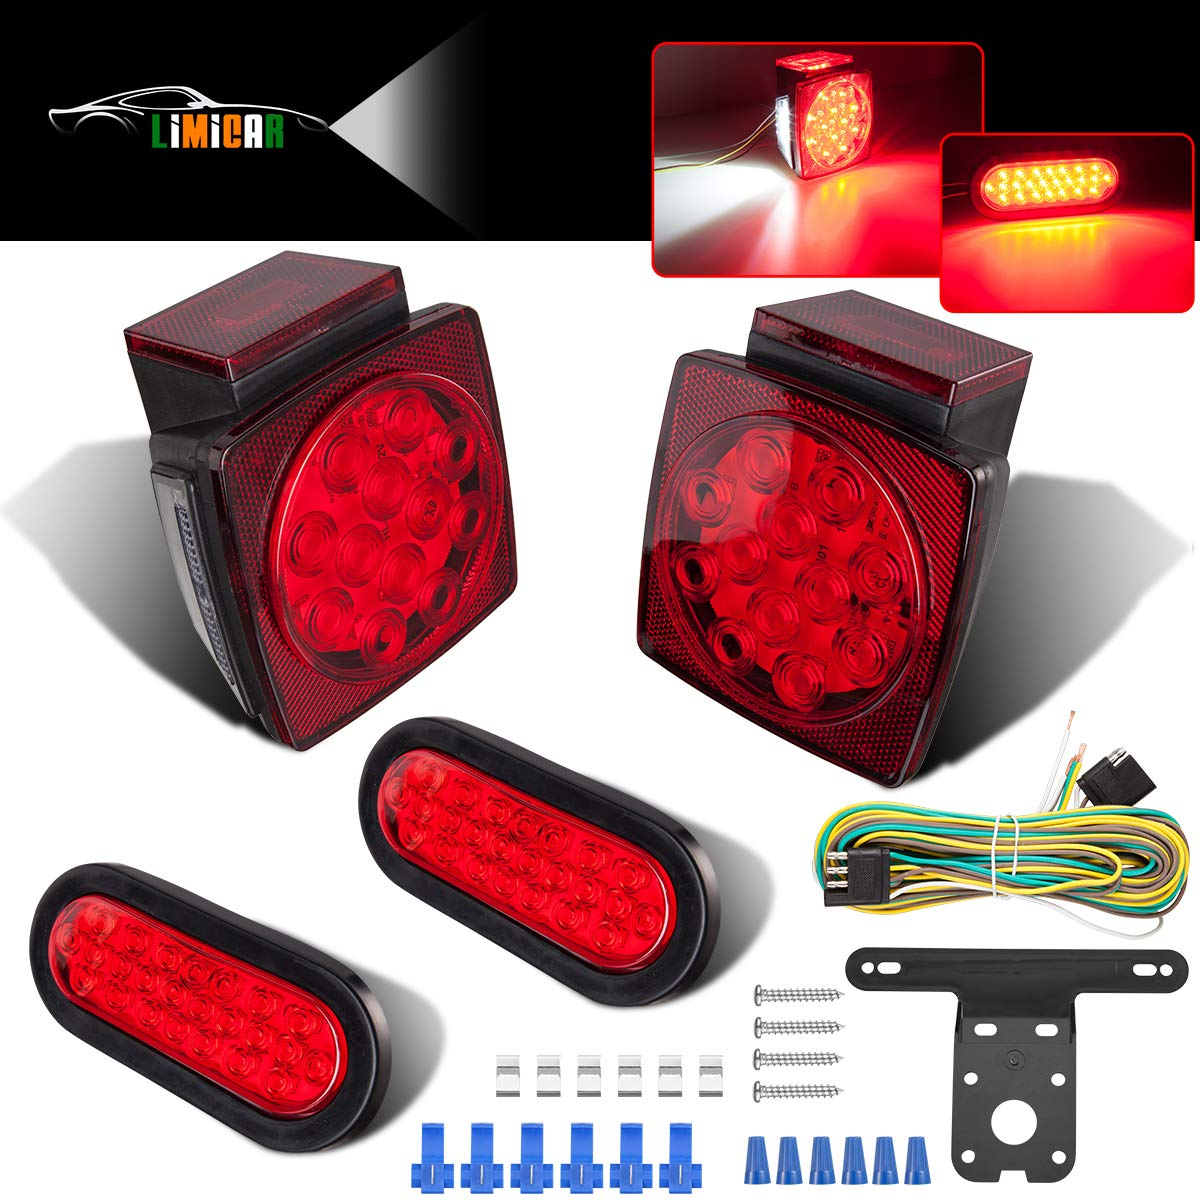 LIMICAR LED Square Trailer Lights Kit with 12 LED Amber Side Marker Lights Waterproof 12V Stop Turn Tail License Lights for Trailers Truck RV Camper